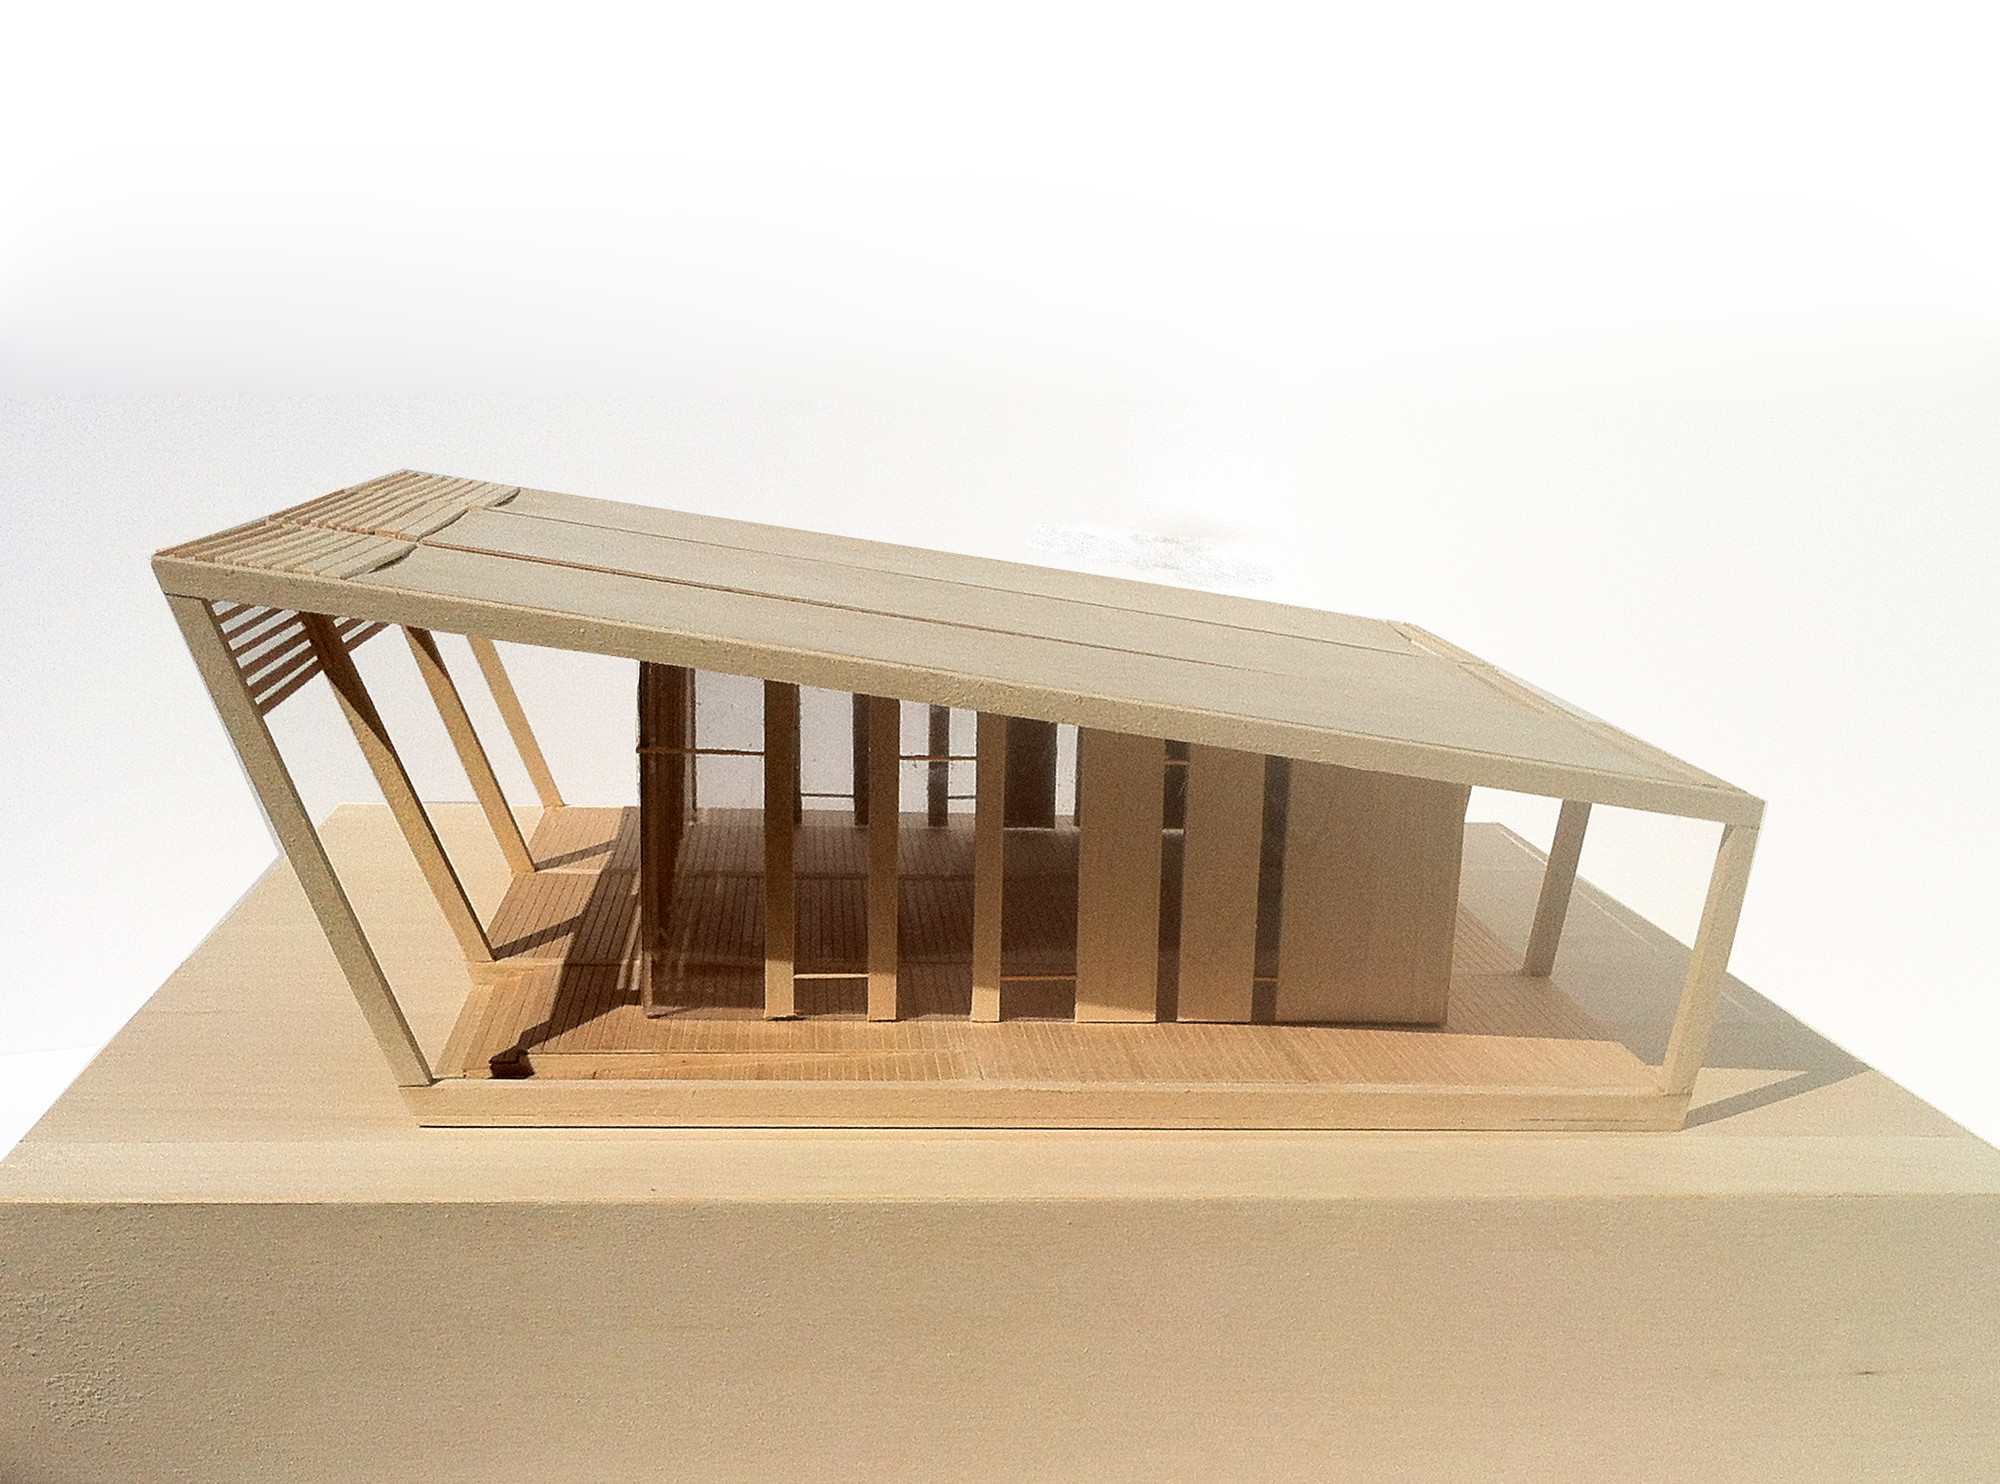 Architectural Model Kits Gallery Of Quota Kit Of Parts Quot Mobile Classrooms By Studio